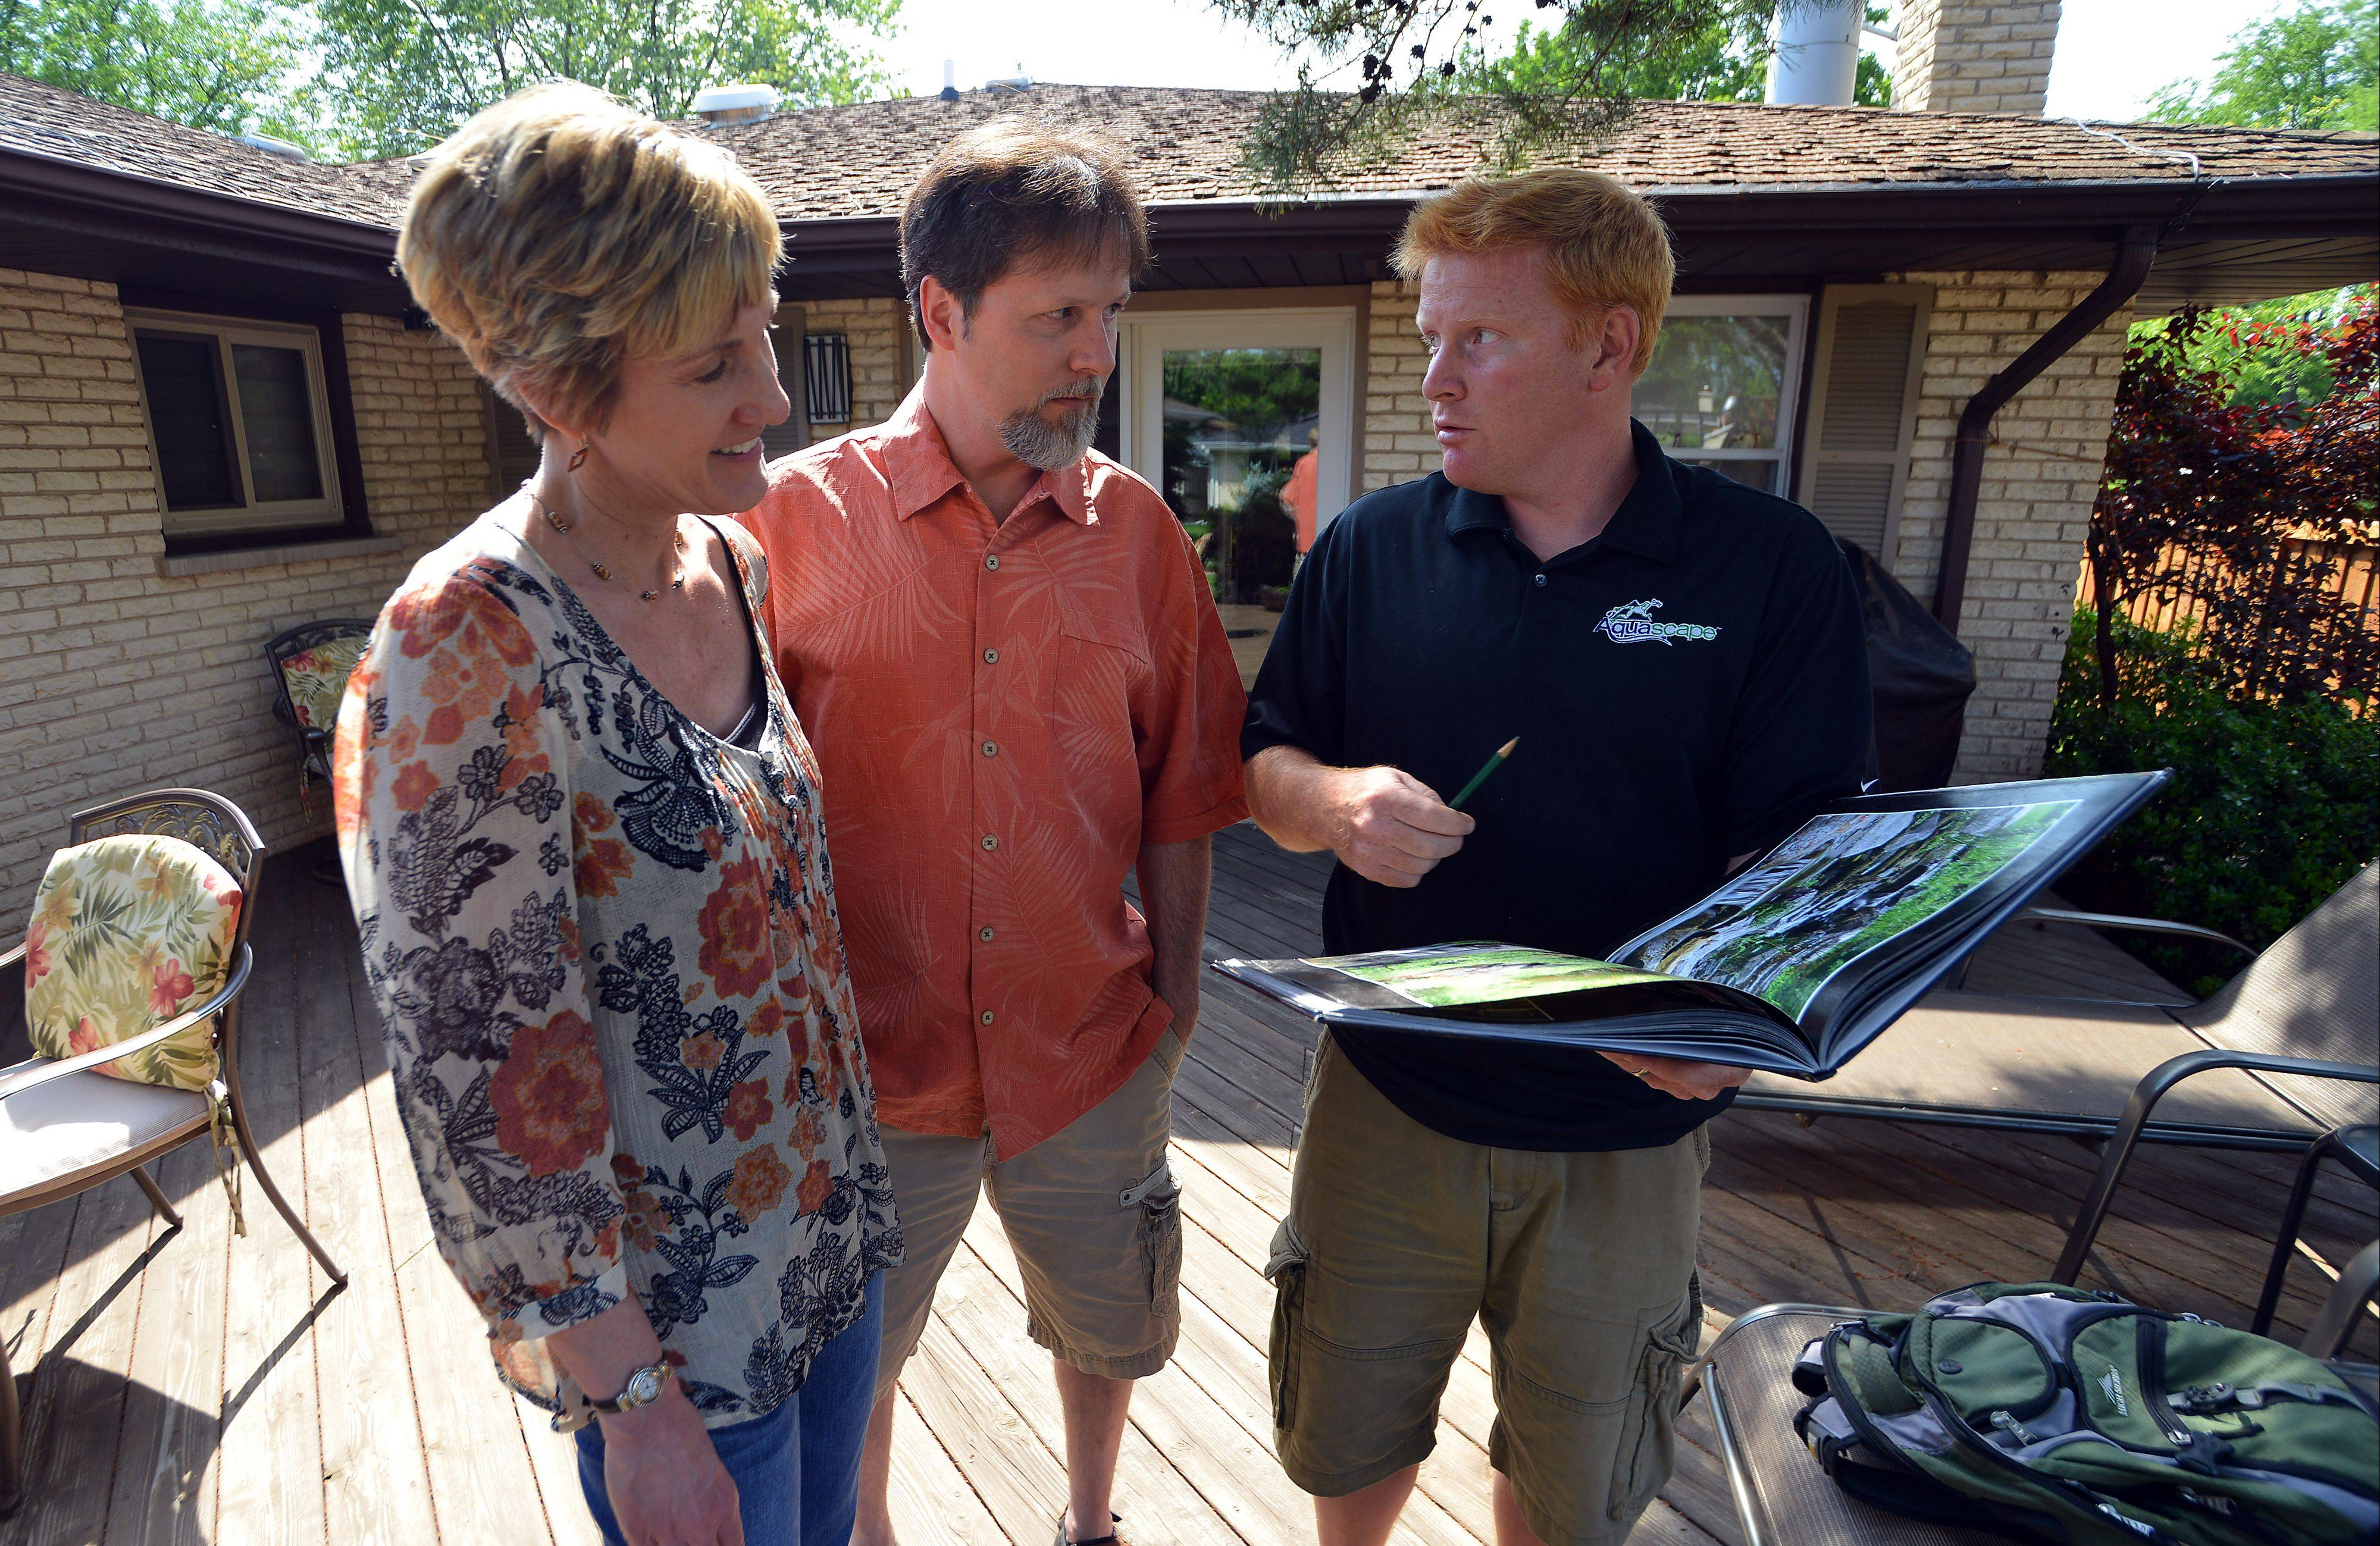 Scott and Amy Bell of Mount Prospect talk with Brian Helfrich, construction manager at Aquascapes of St. Charles, about designing a pond-less waterfall in their backyard, which they won as part of the Daily Herald's Get Your Summer On contest.